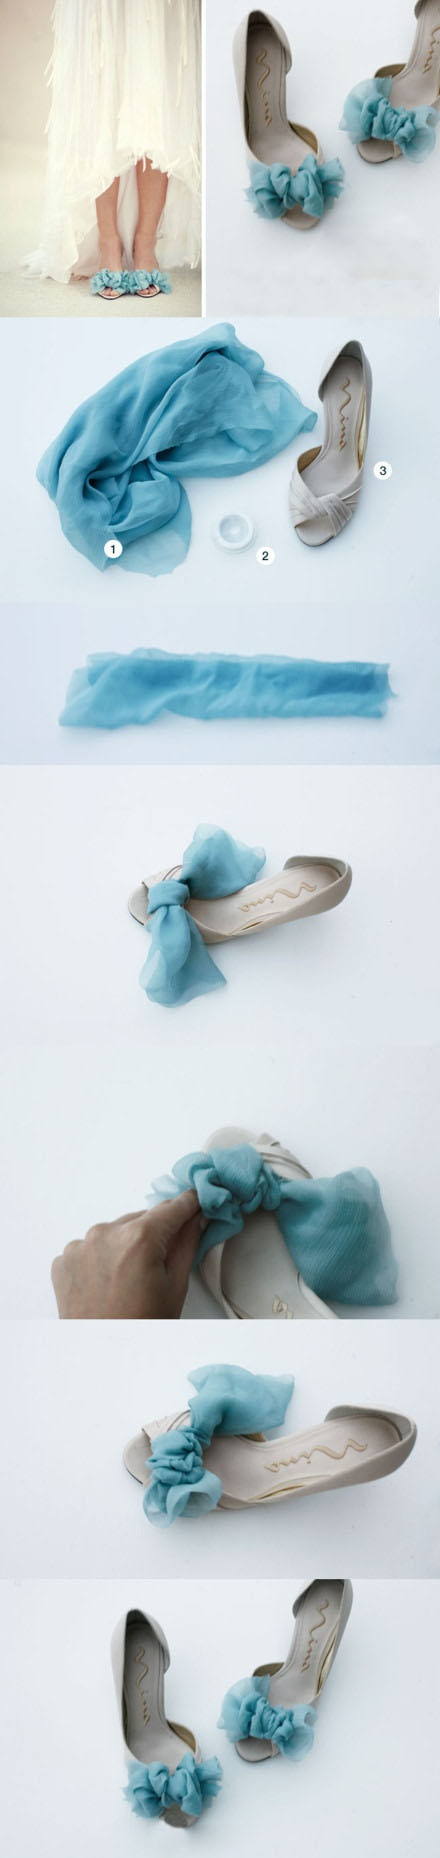 Very beachy feel to these DIY shoes!                                                                                                                                                                                 More